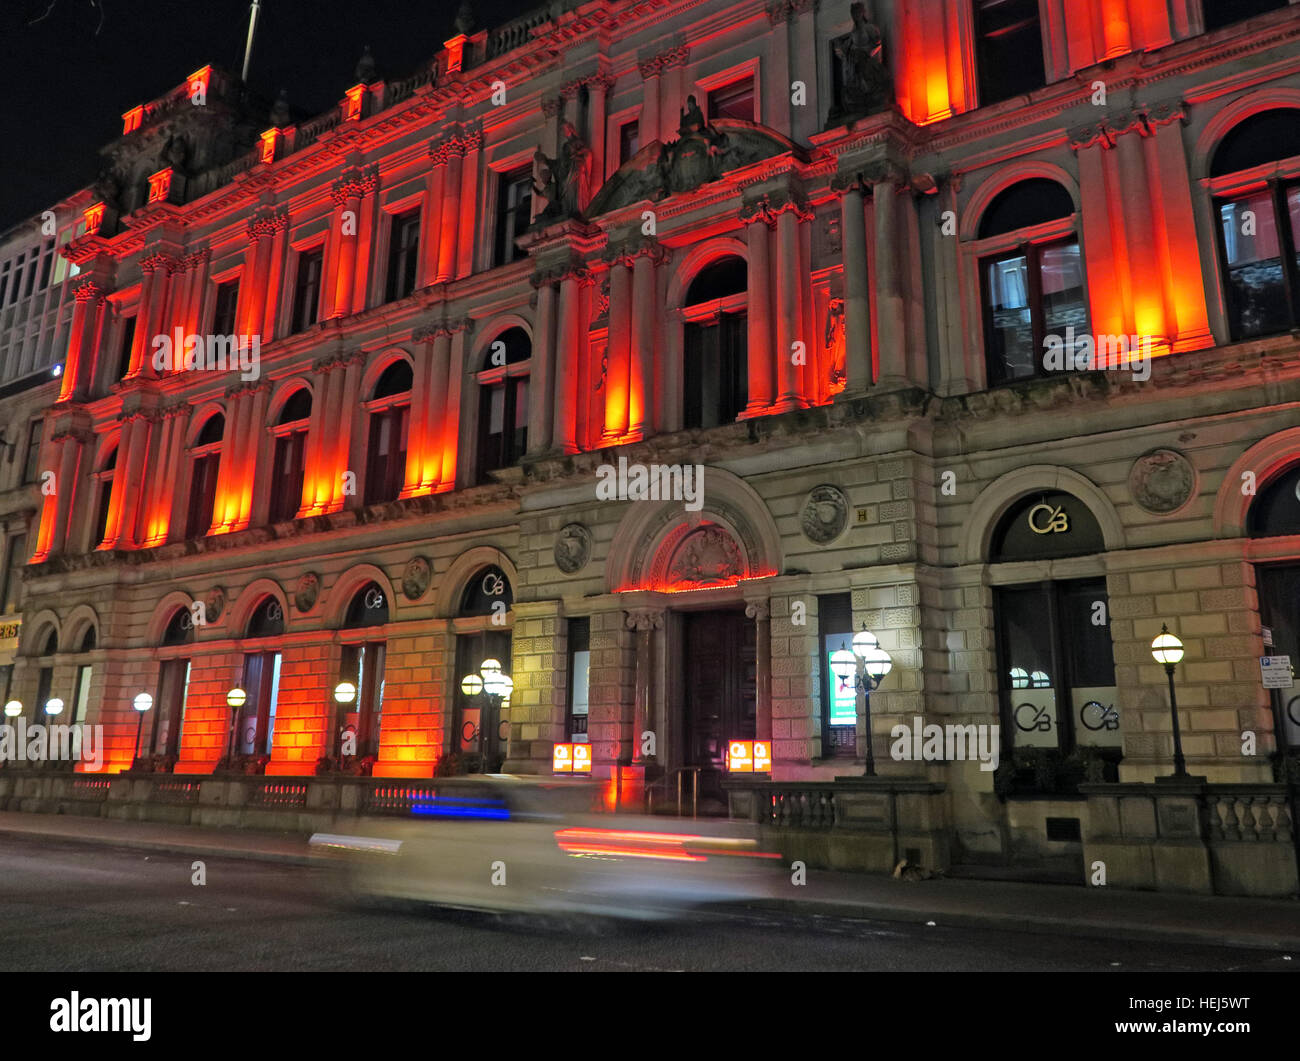 Clydesdale Bank Chambers at Night,Glasgow,near George Square, Scotland, UK - Stock Image